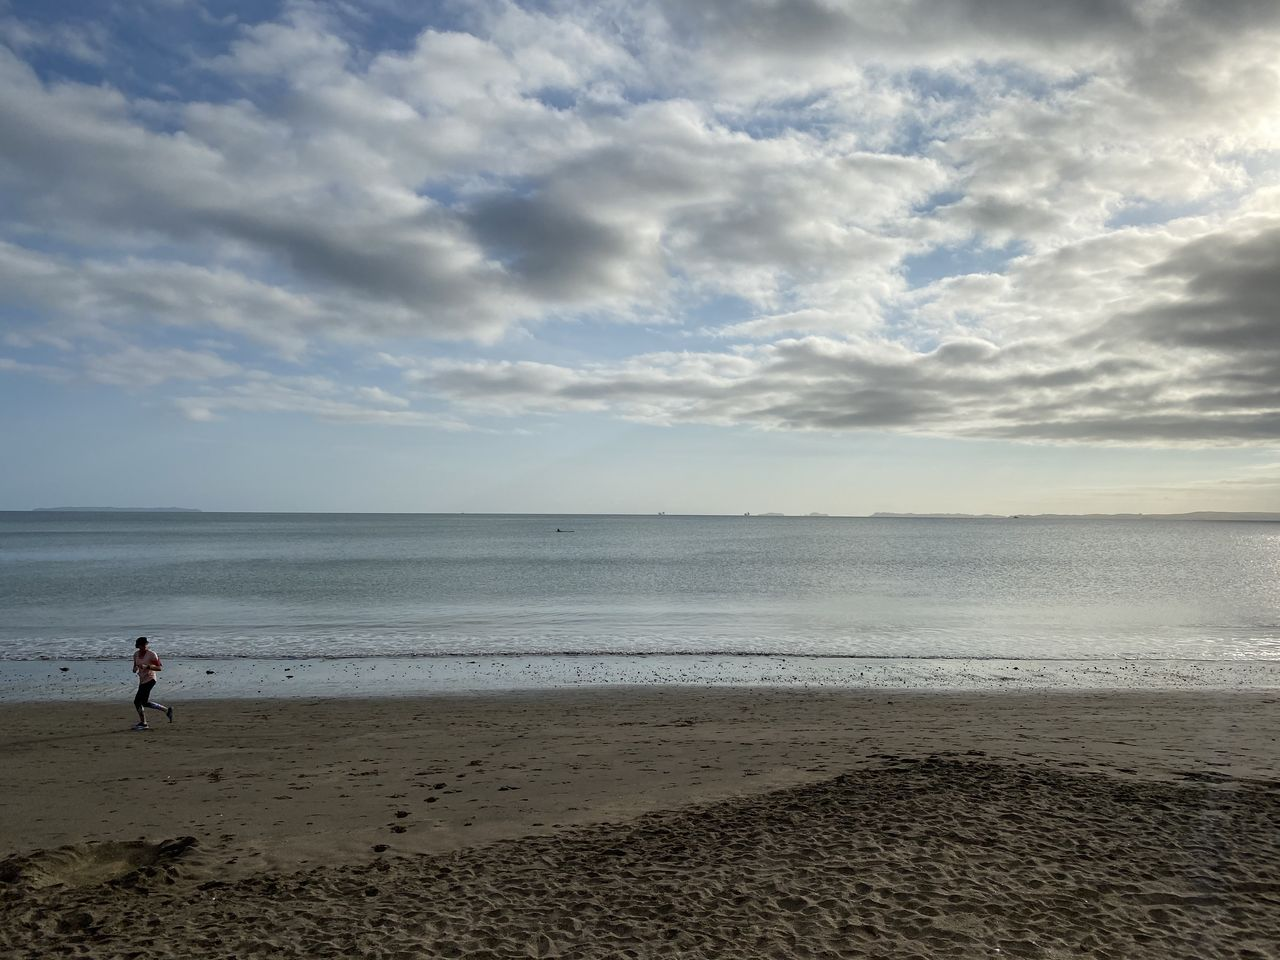 sea, beach, sky, cloud - sky, land, water, horizon, horizon over water, scenics - nature, beauty in nature, sand, real people, nature, tranquil scene, non-urban scene, tranquility, one person, leisure activity, outdoors